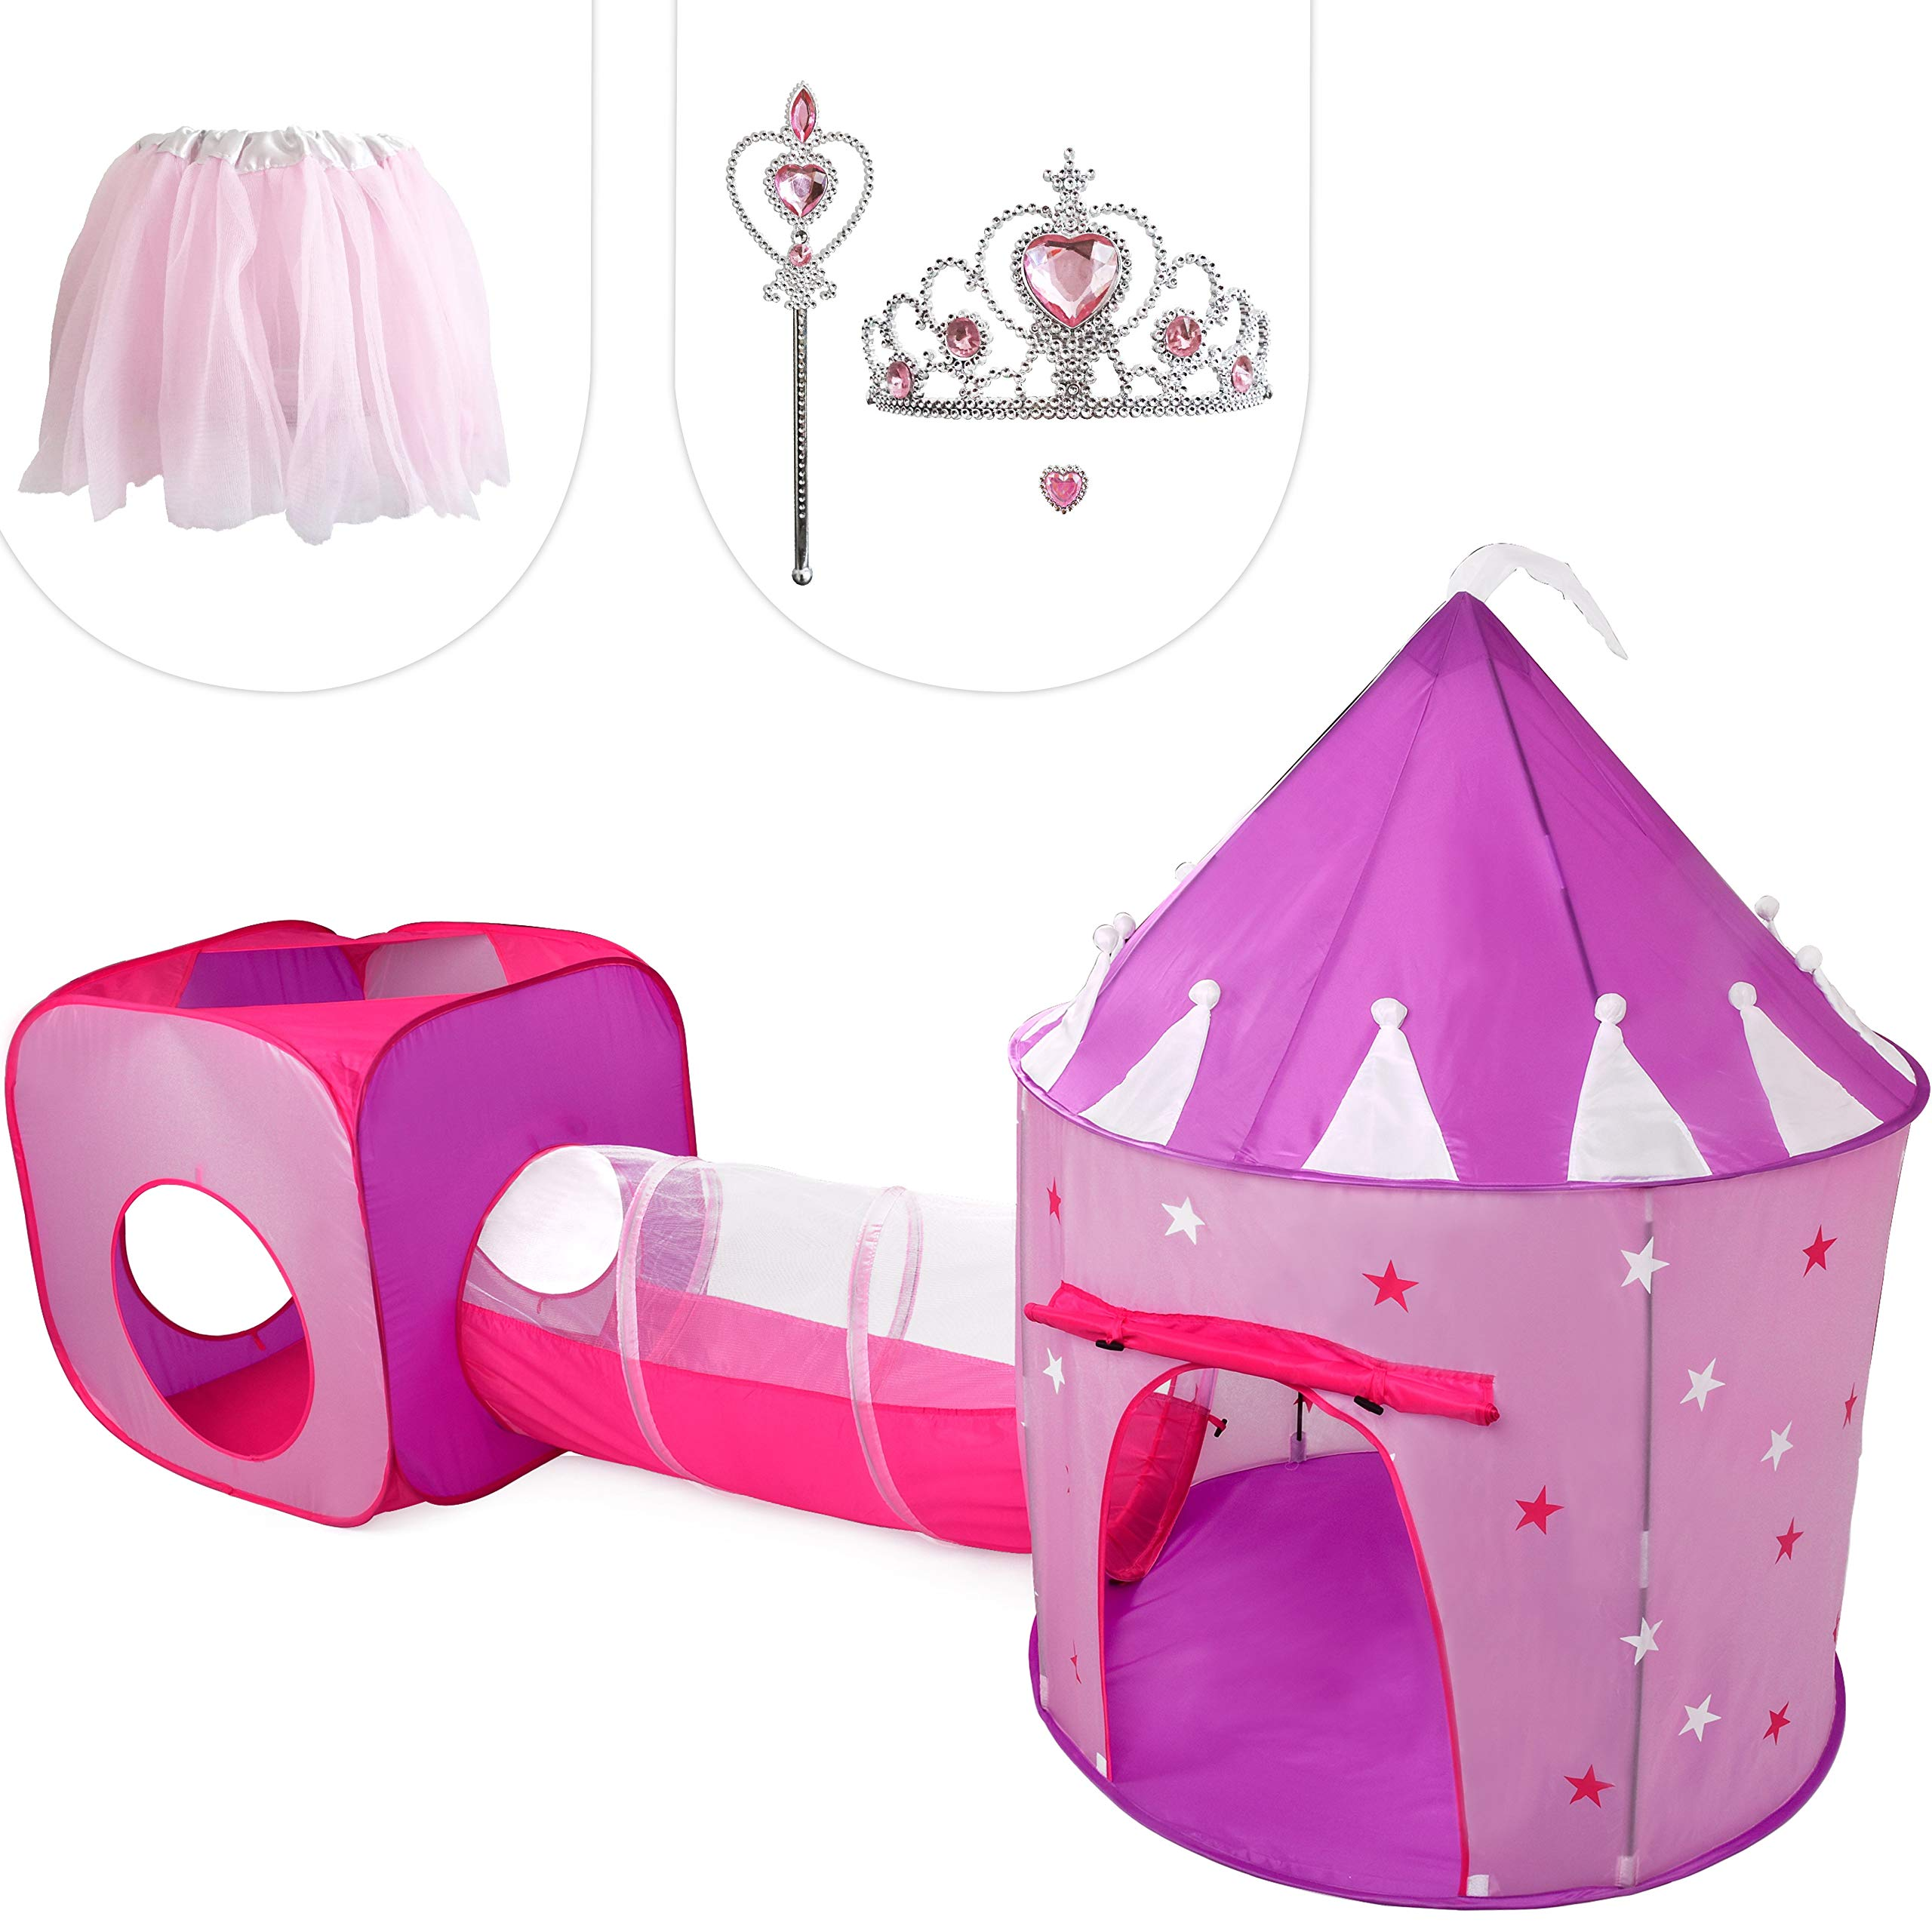 Gift for Girls, Princess Tent with Tunnel, Kids Castle Playhouse & Princess Dress up Pop Up Play Tent Set, Toddlers Toy Birthday Gift Present for Age 2 3 4 5 6 7 Years, Glow in The Dark Stars, Indoor by Hide N Side